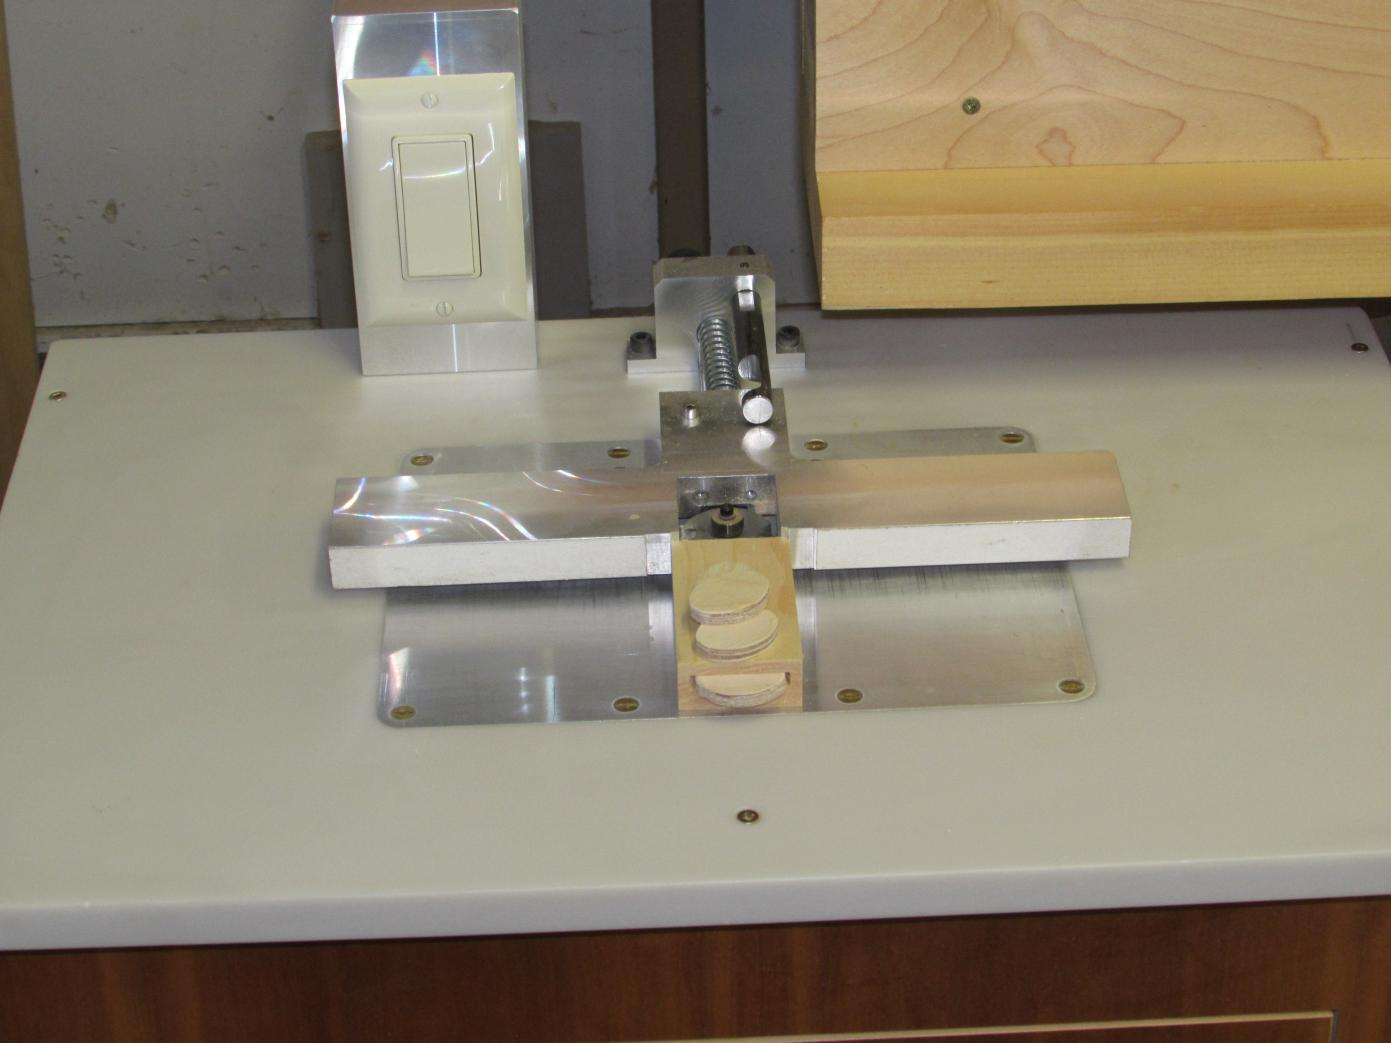 New router table for making face frame joints